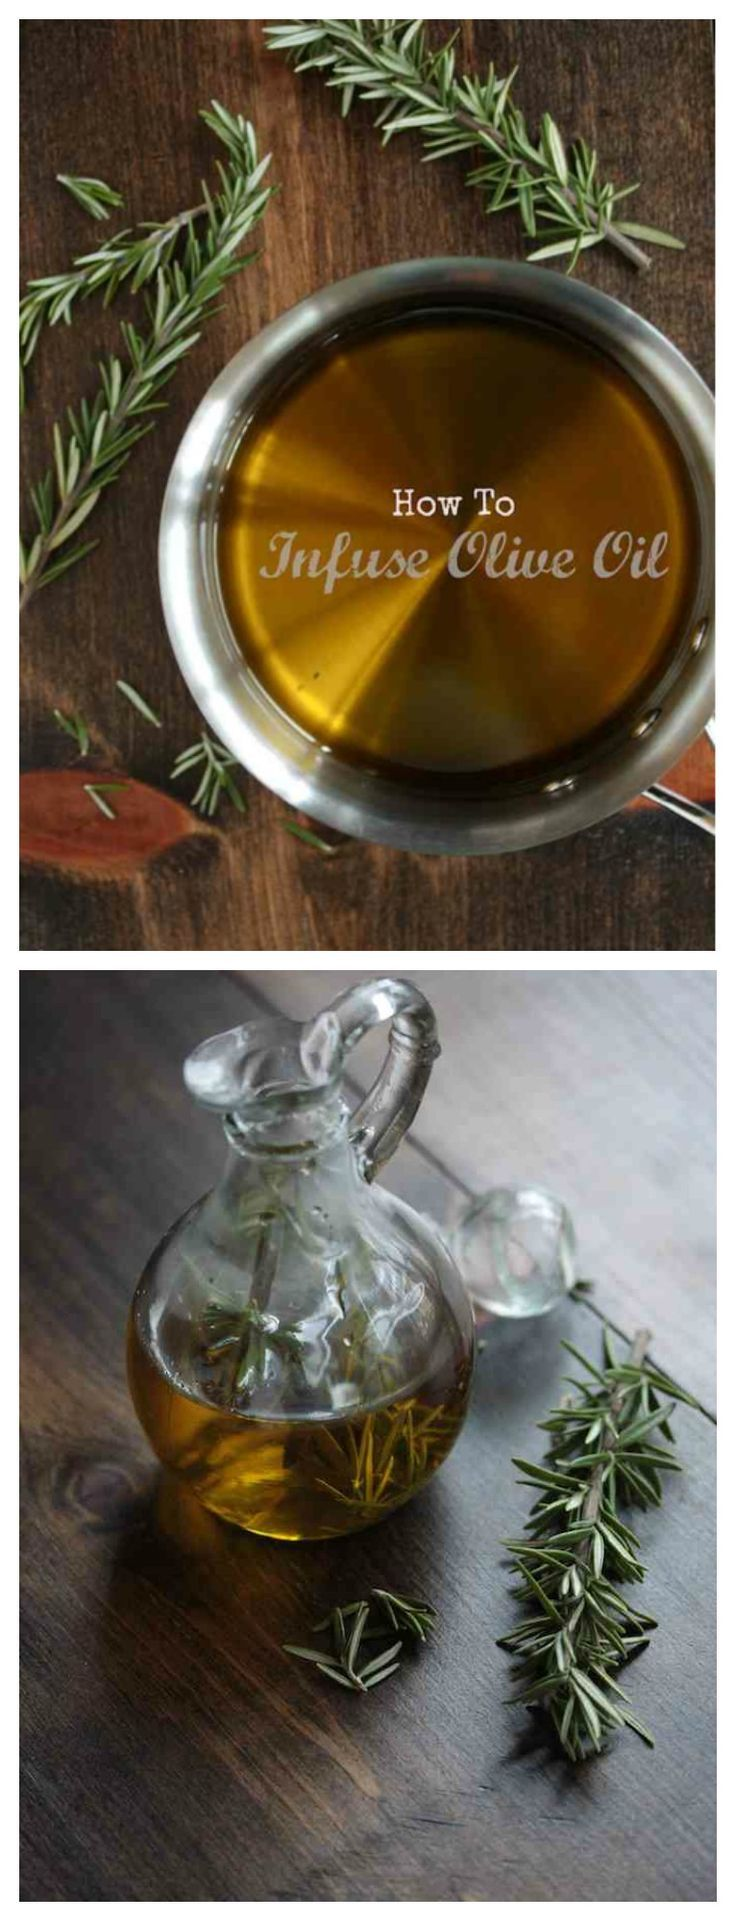 How-To Tuesday : How to Infuse Olive Oil #oliveoils